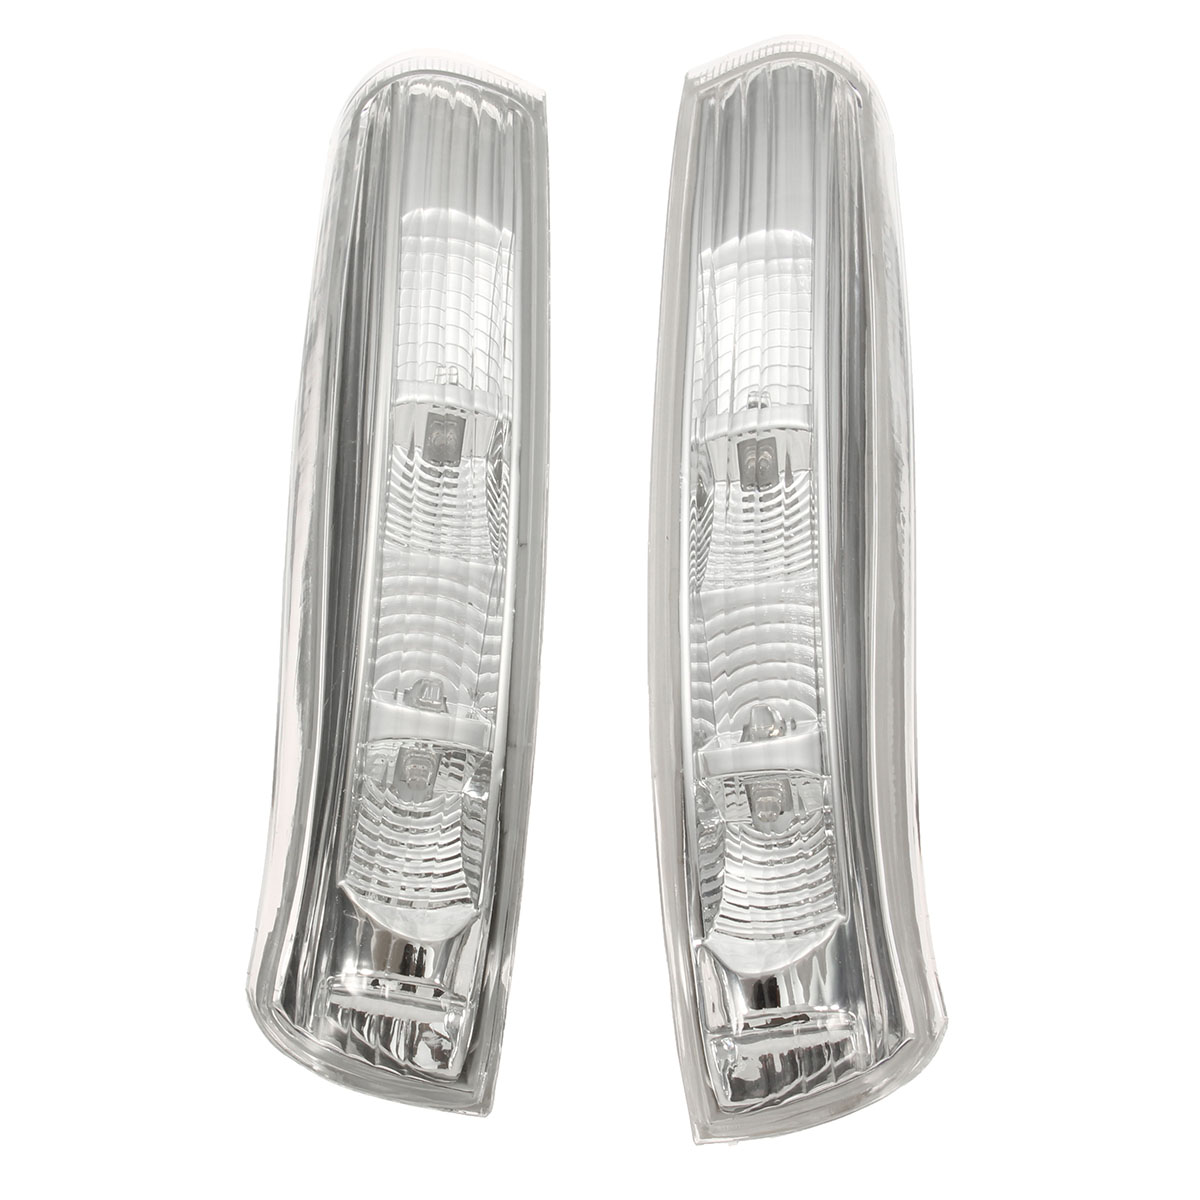 1Pair LED Yellow Auto Rear View Mirror Turn Signal LED Light Side Lamp For Chevrolet/Captiva 2011 2012 2013 2014